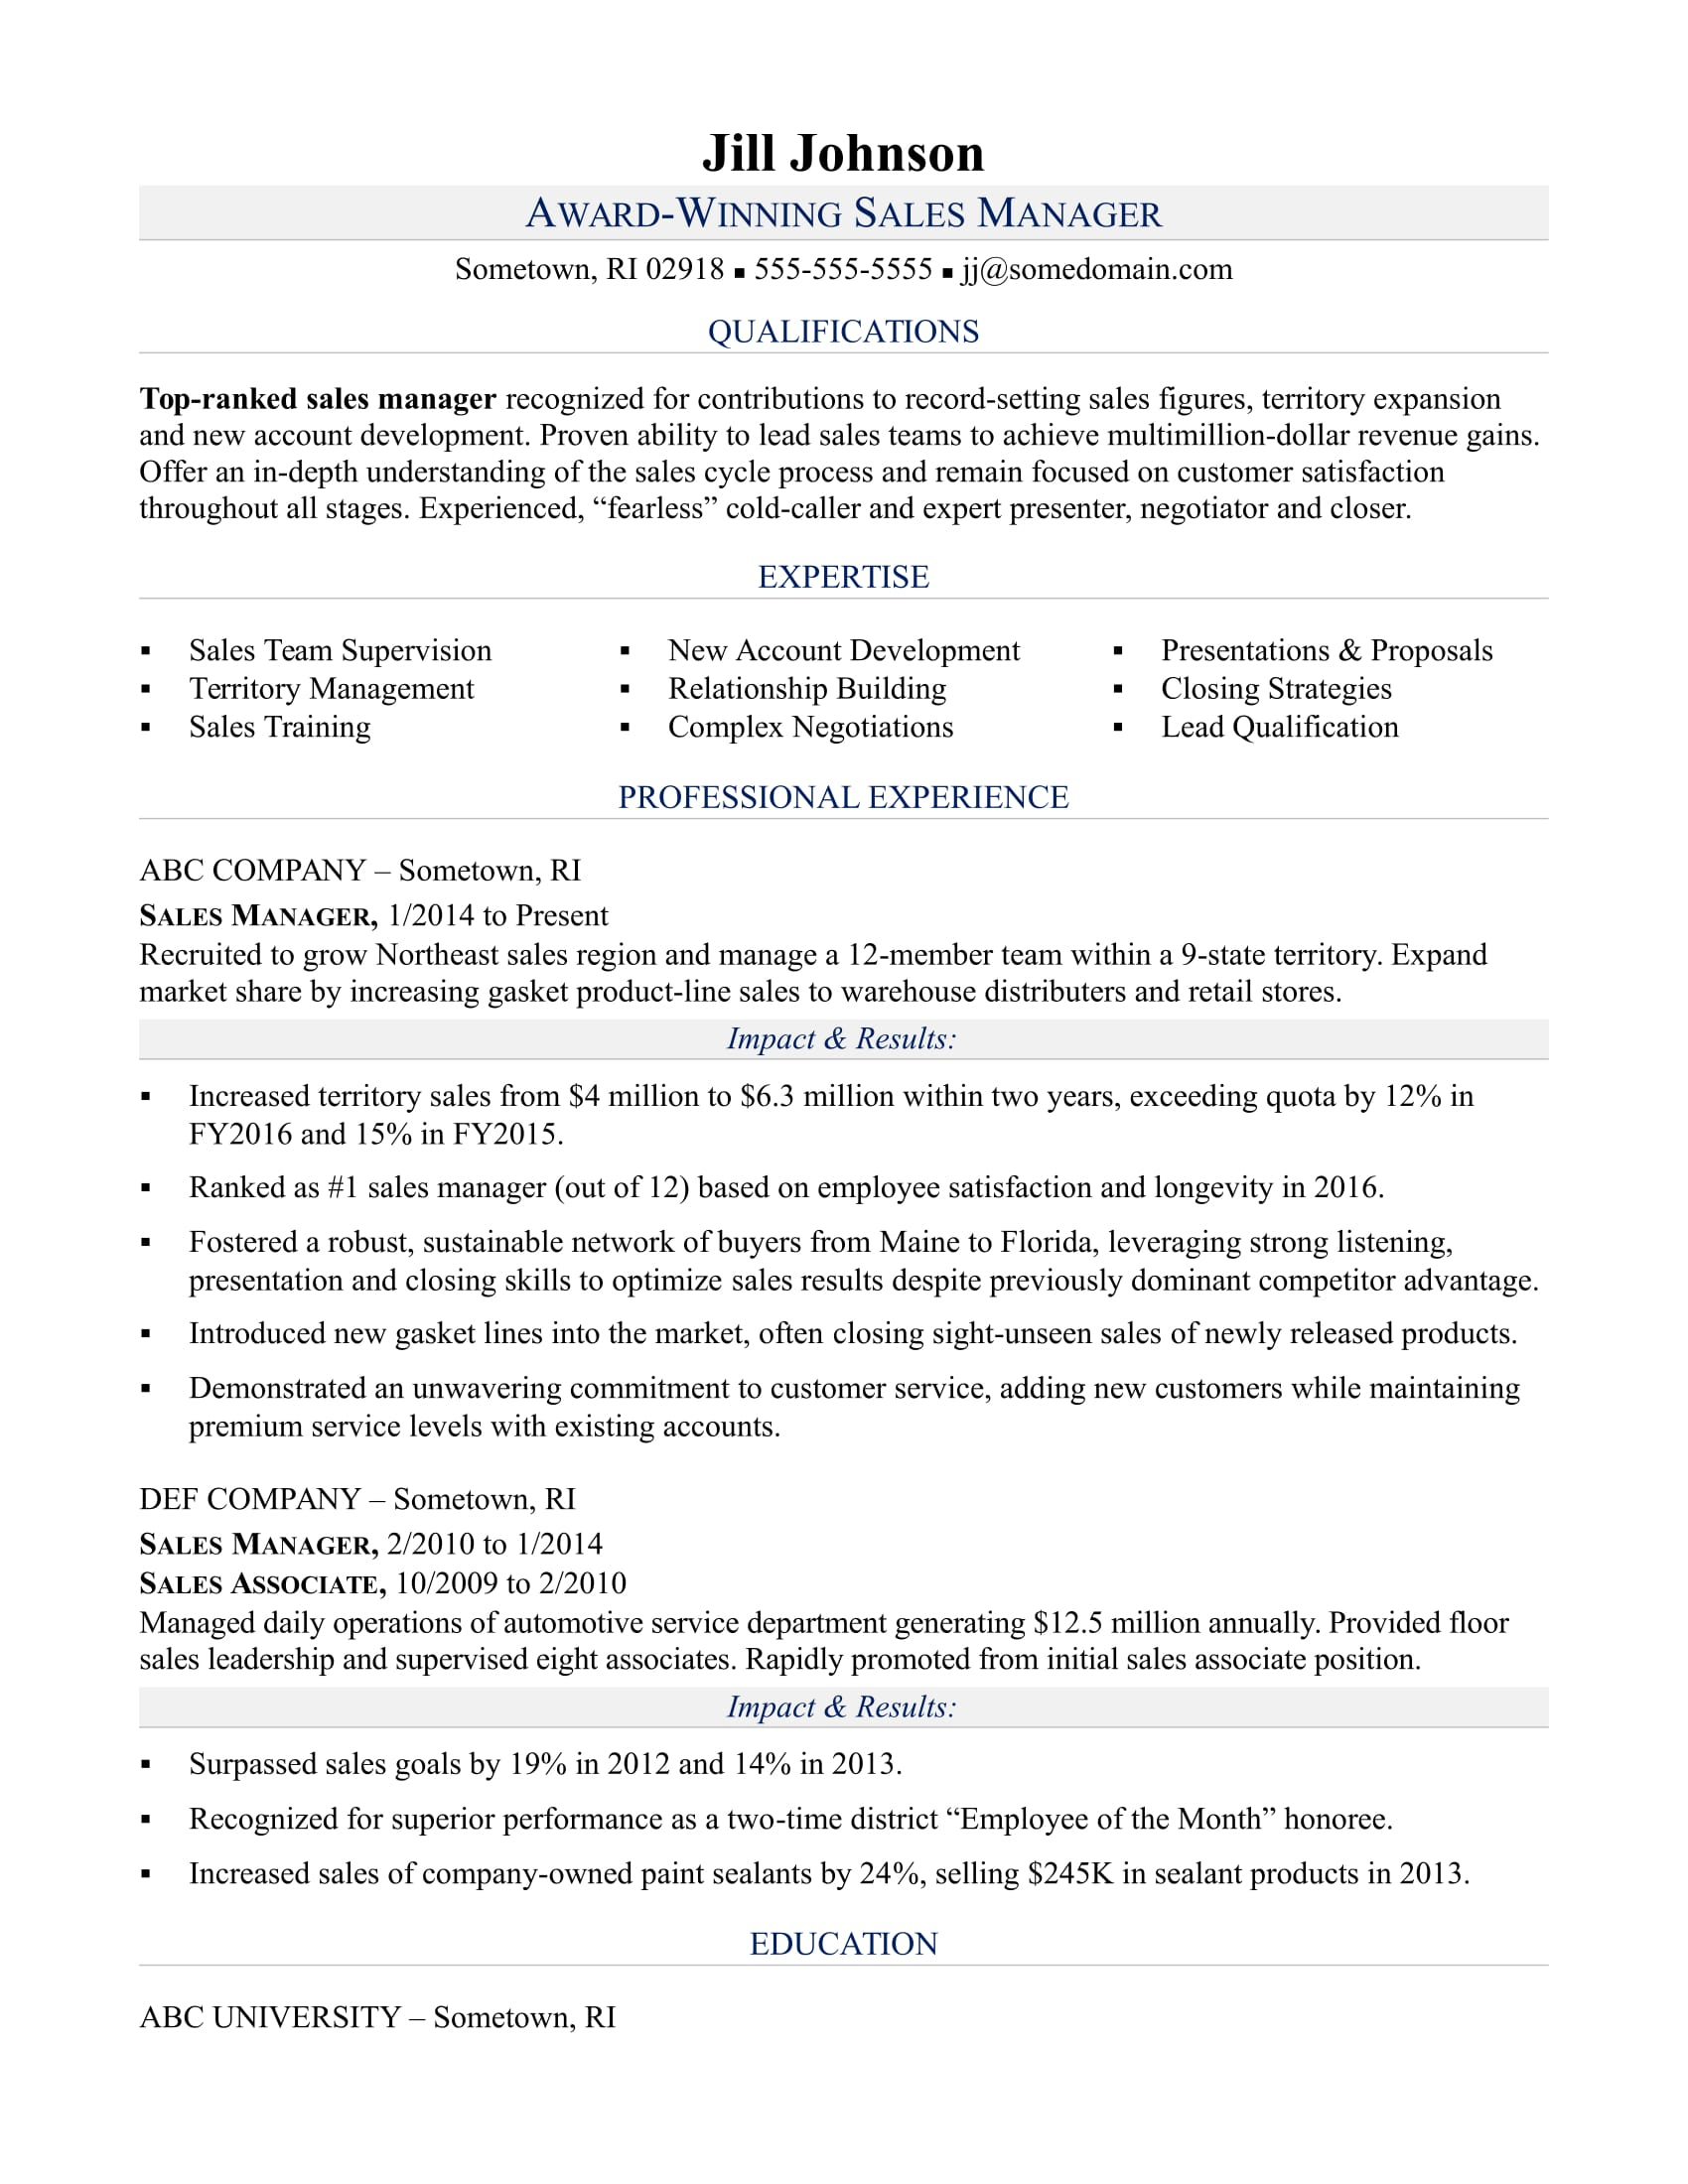 Sample Resume For A Sales Manager  Tips On Making A Resume